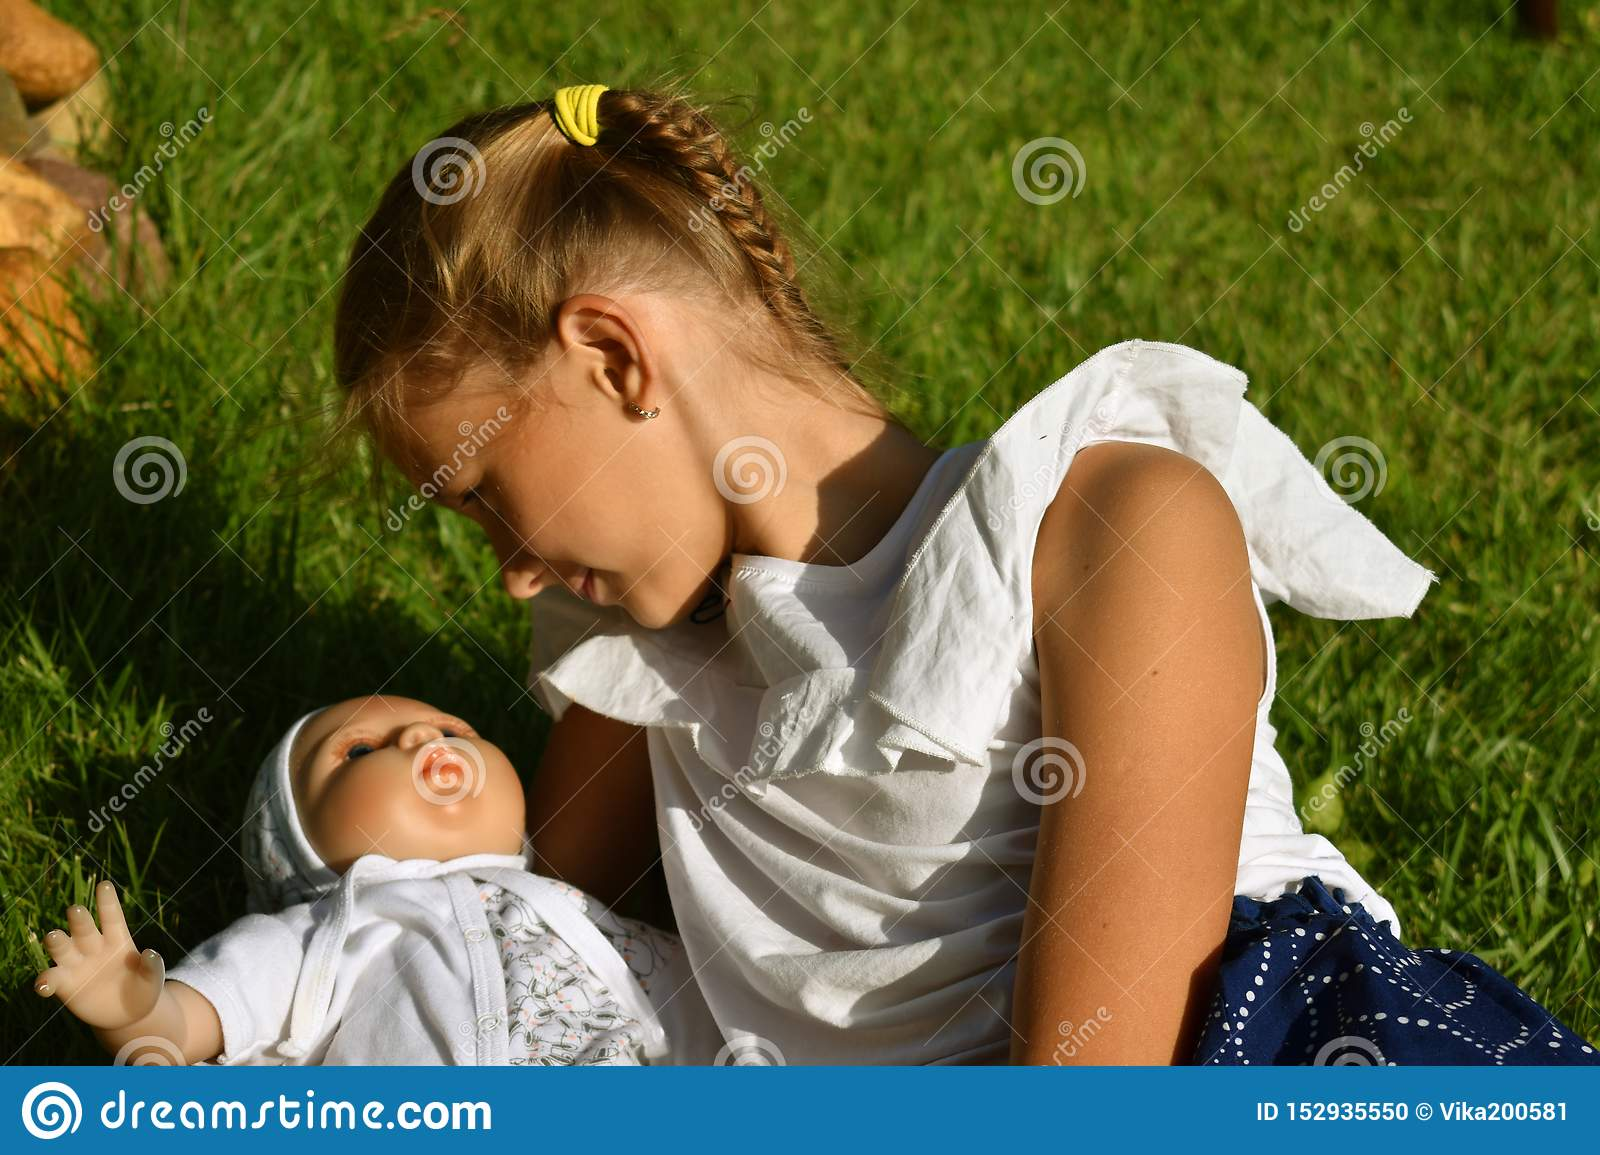 Beautiful little girl with a doll in the summer in a garden